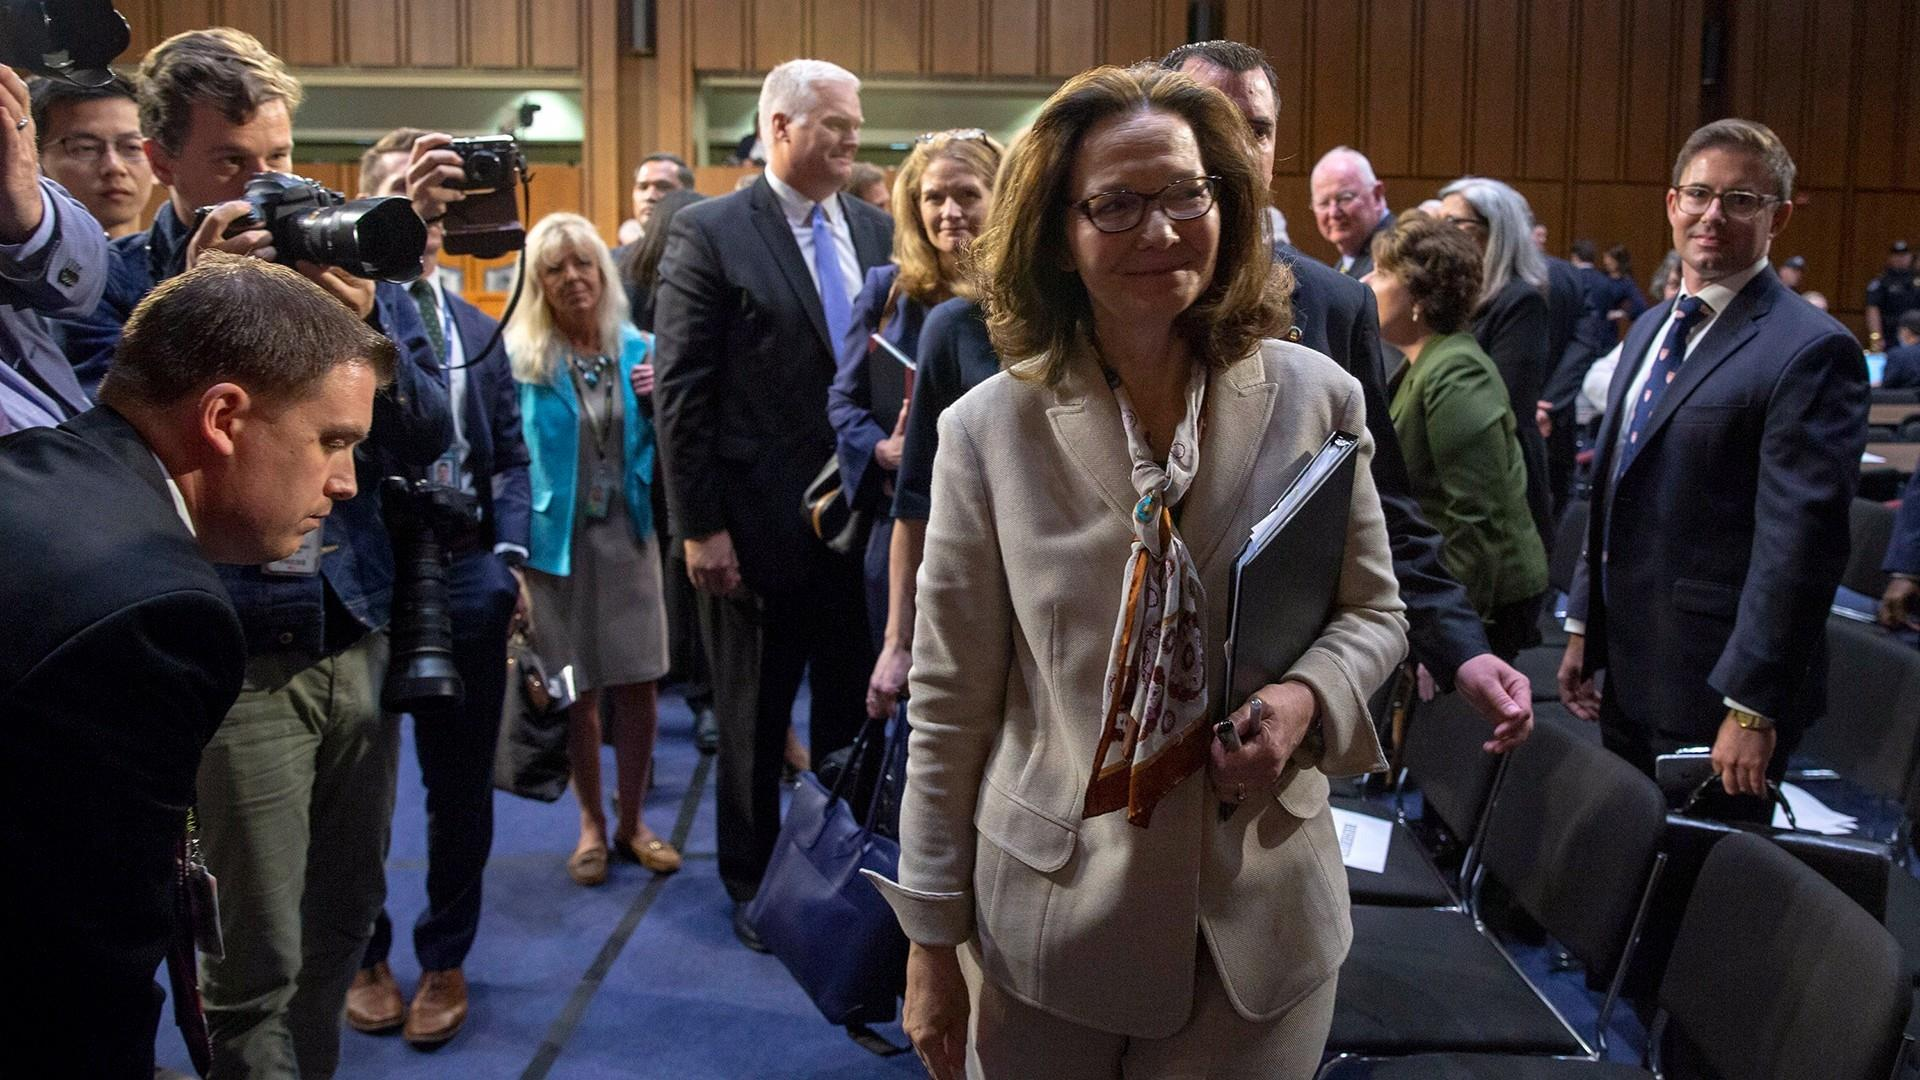 Haspel faces likely confirmation as four Democrats issue support